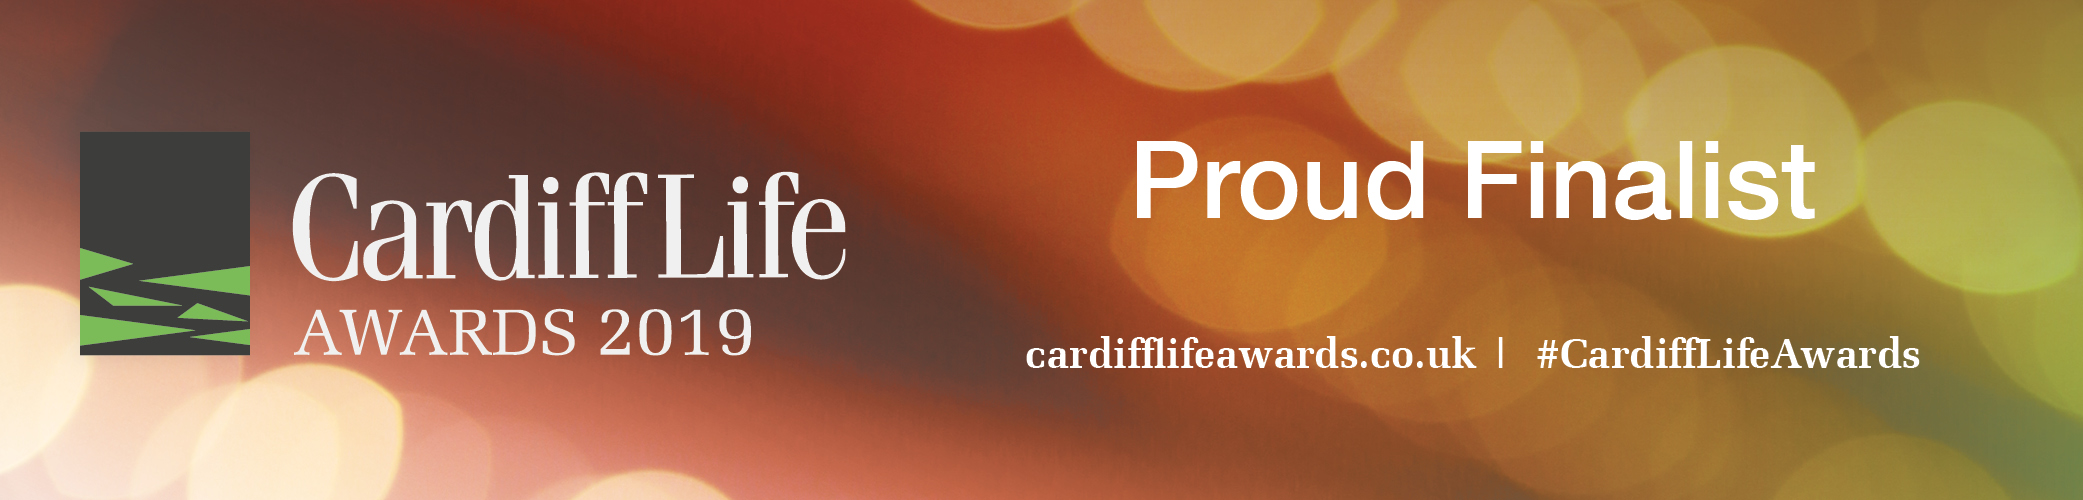 Cardiff Life Awards Finalst